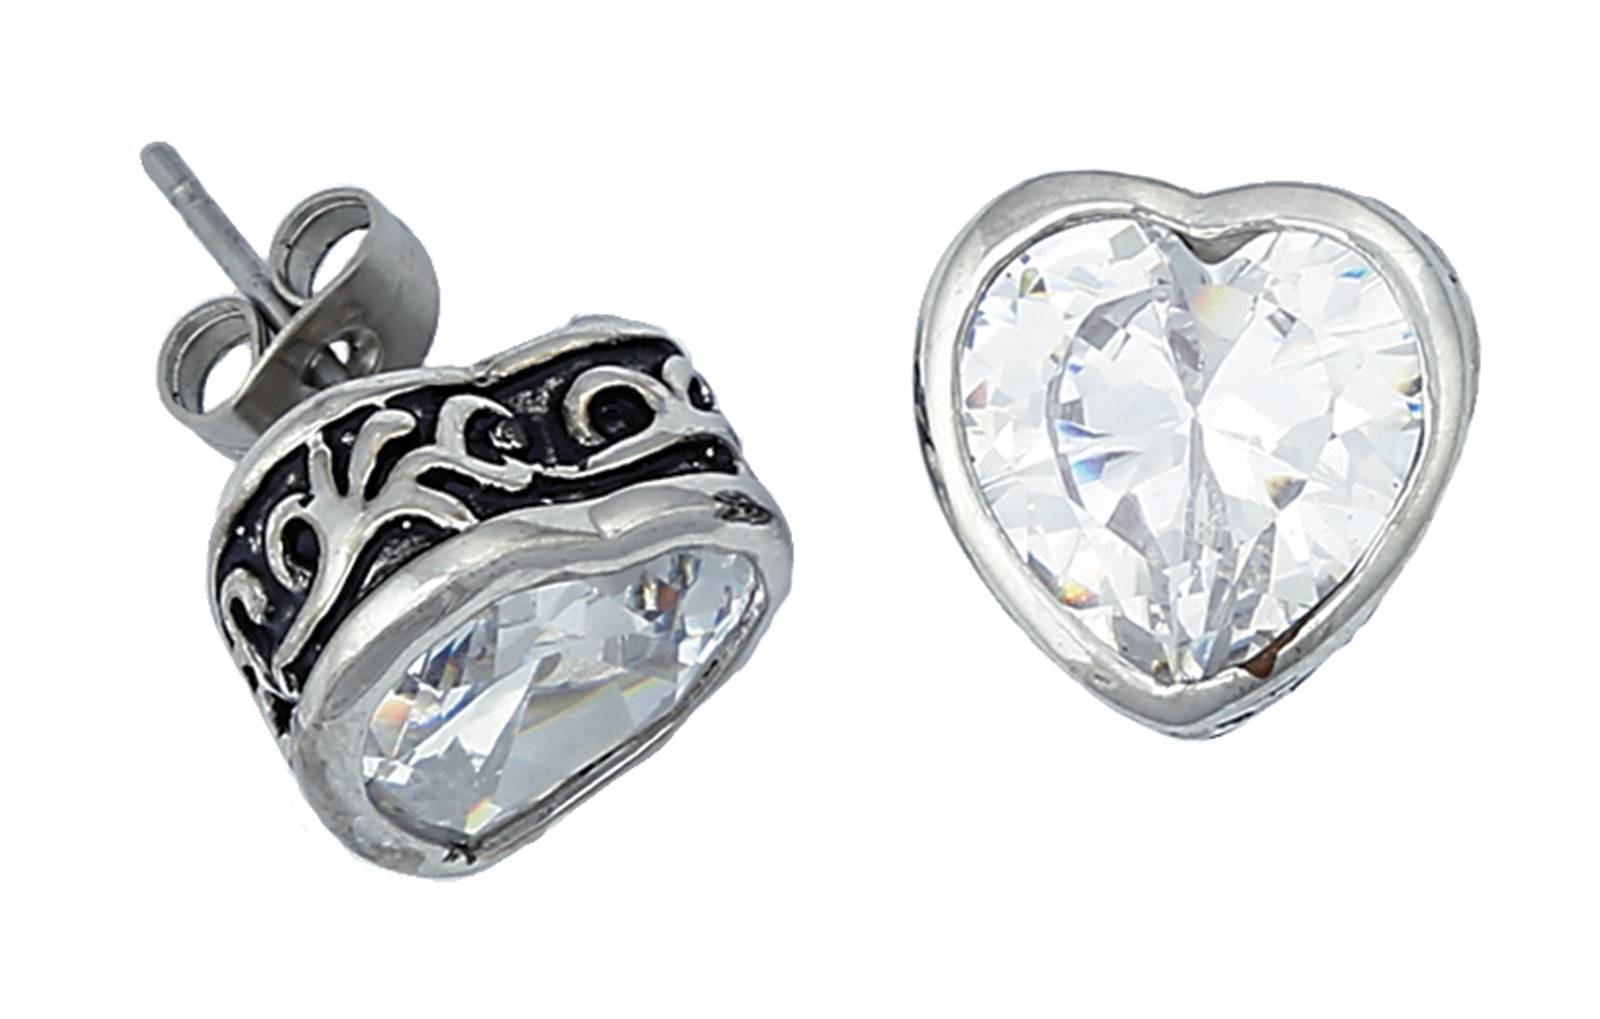 Montana Silversmiths Crystal Heart Filigree Channel Stud Earrings